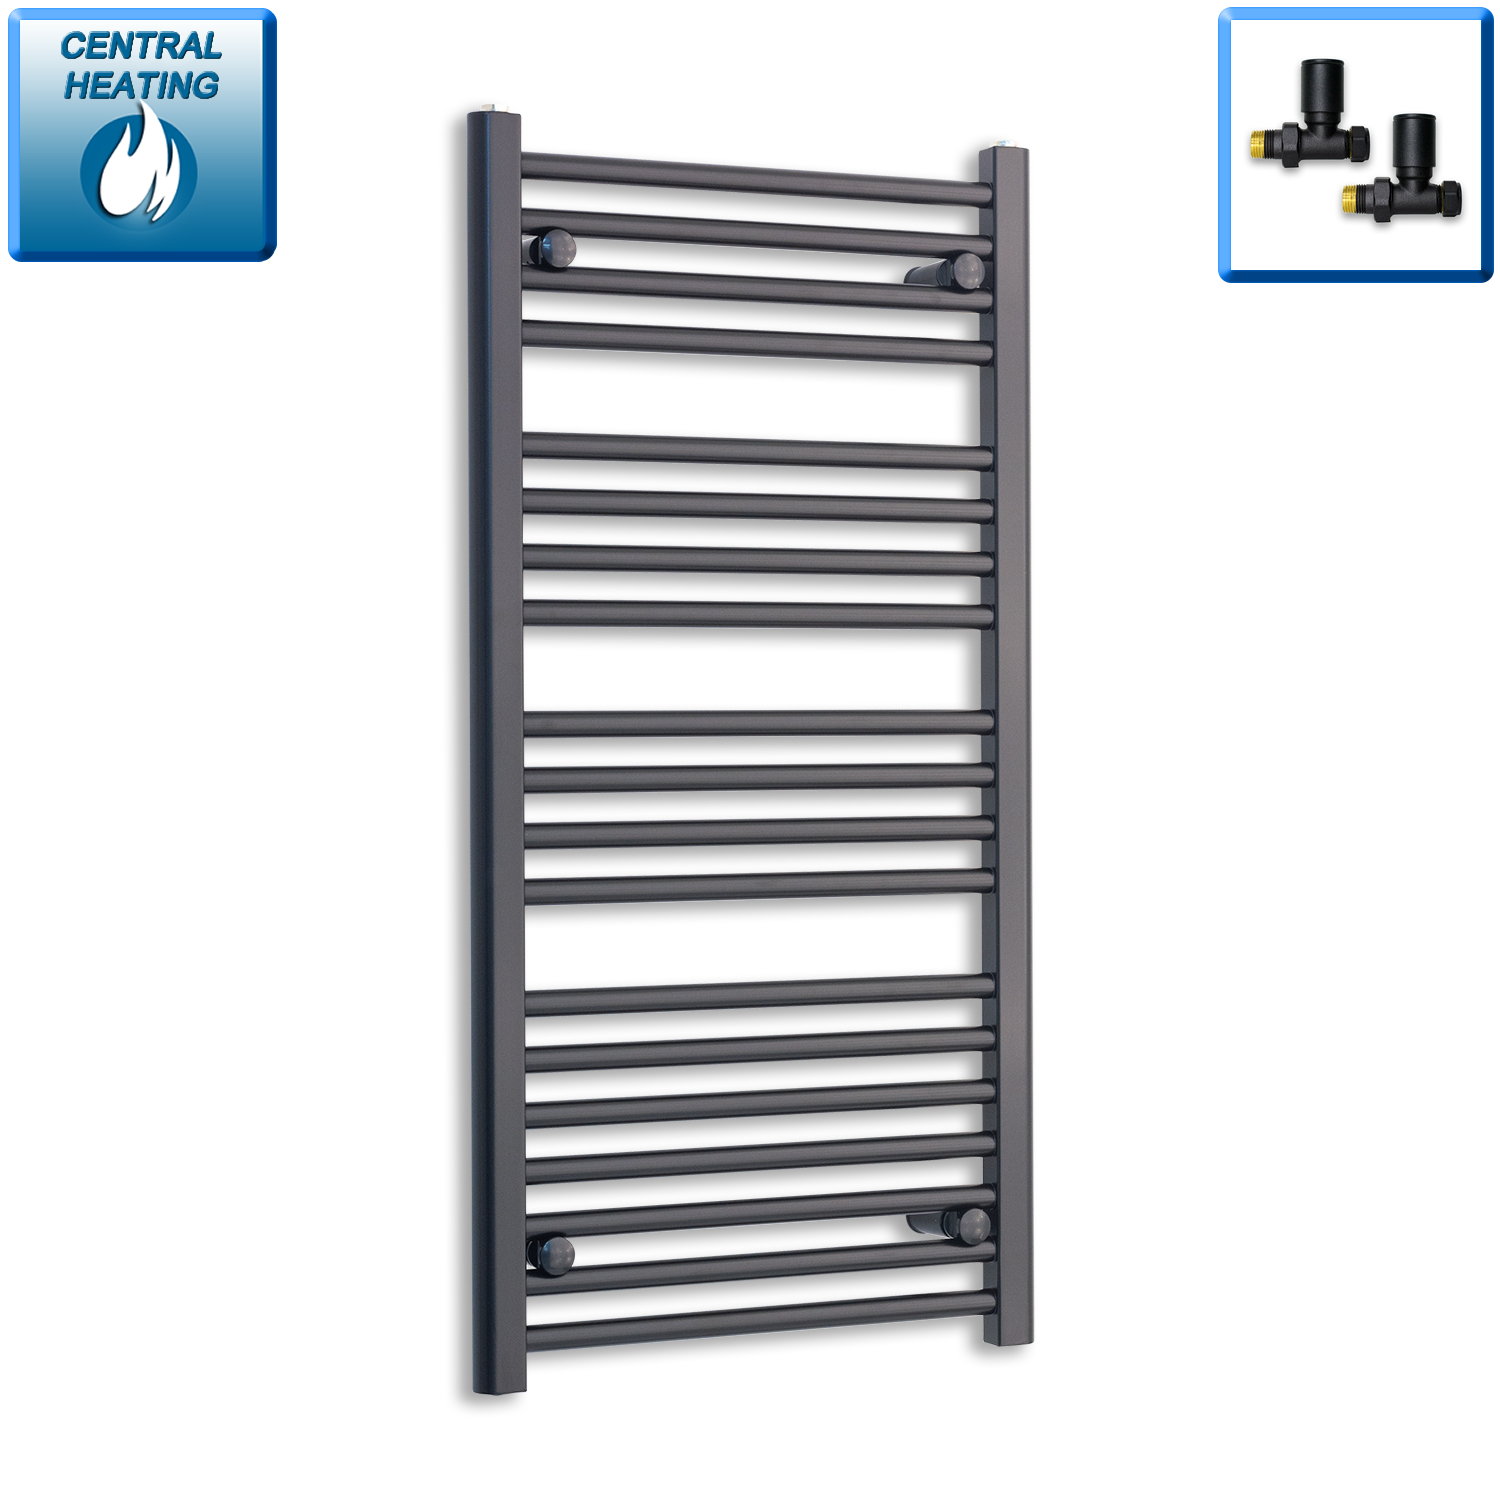 600mm Wide 1000mm High Flat Black Heated Towel Rail Radiator,With Straight Valve